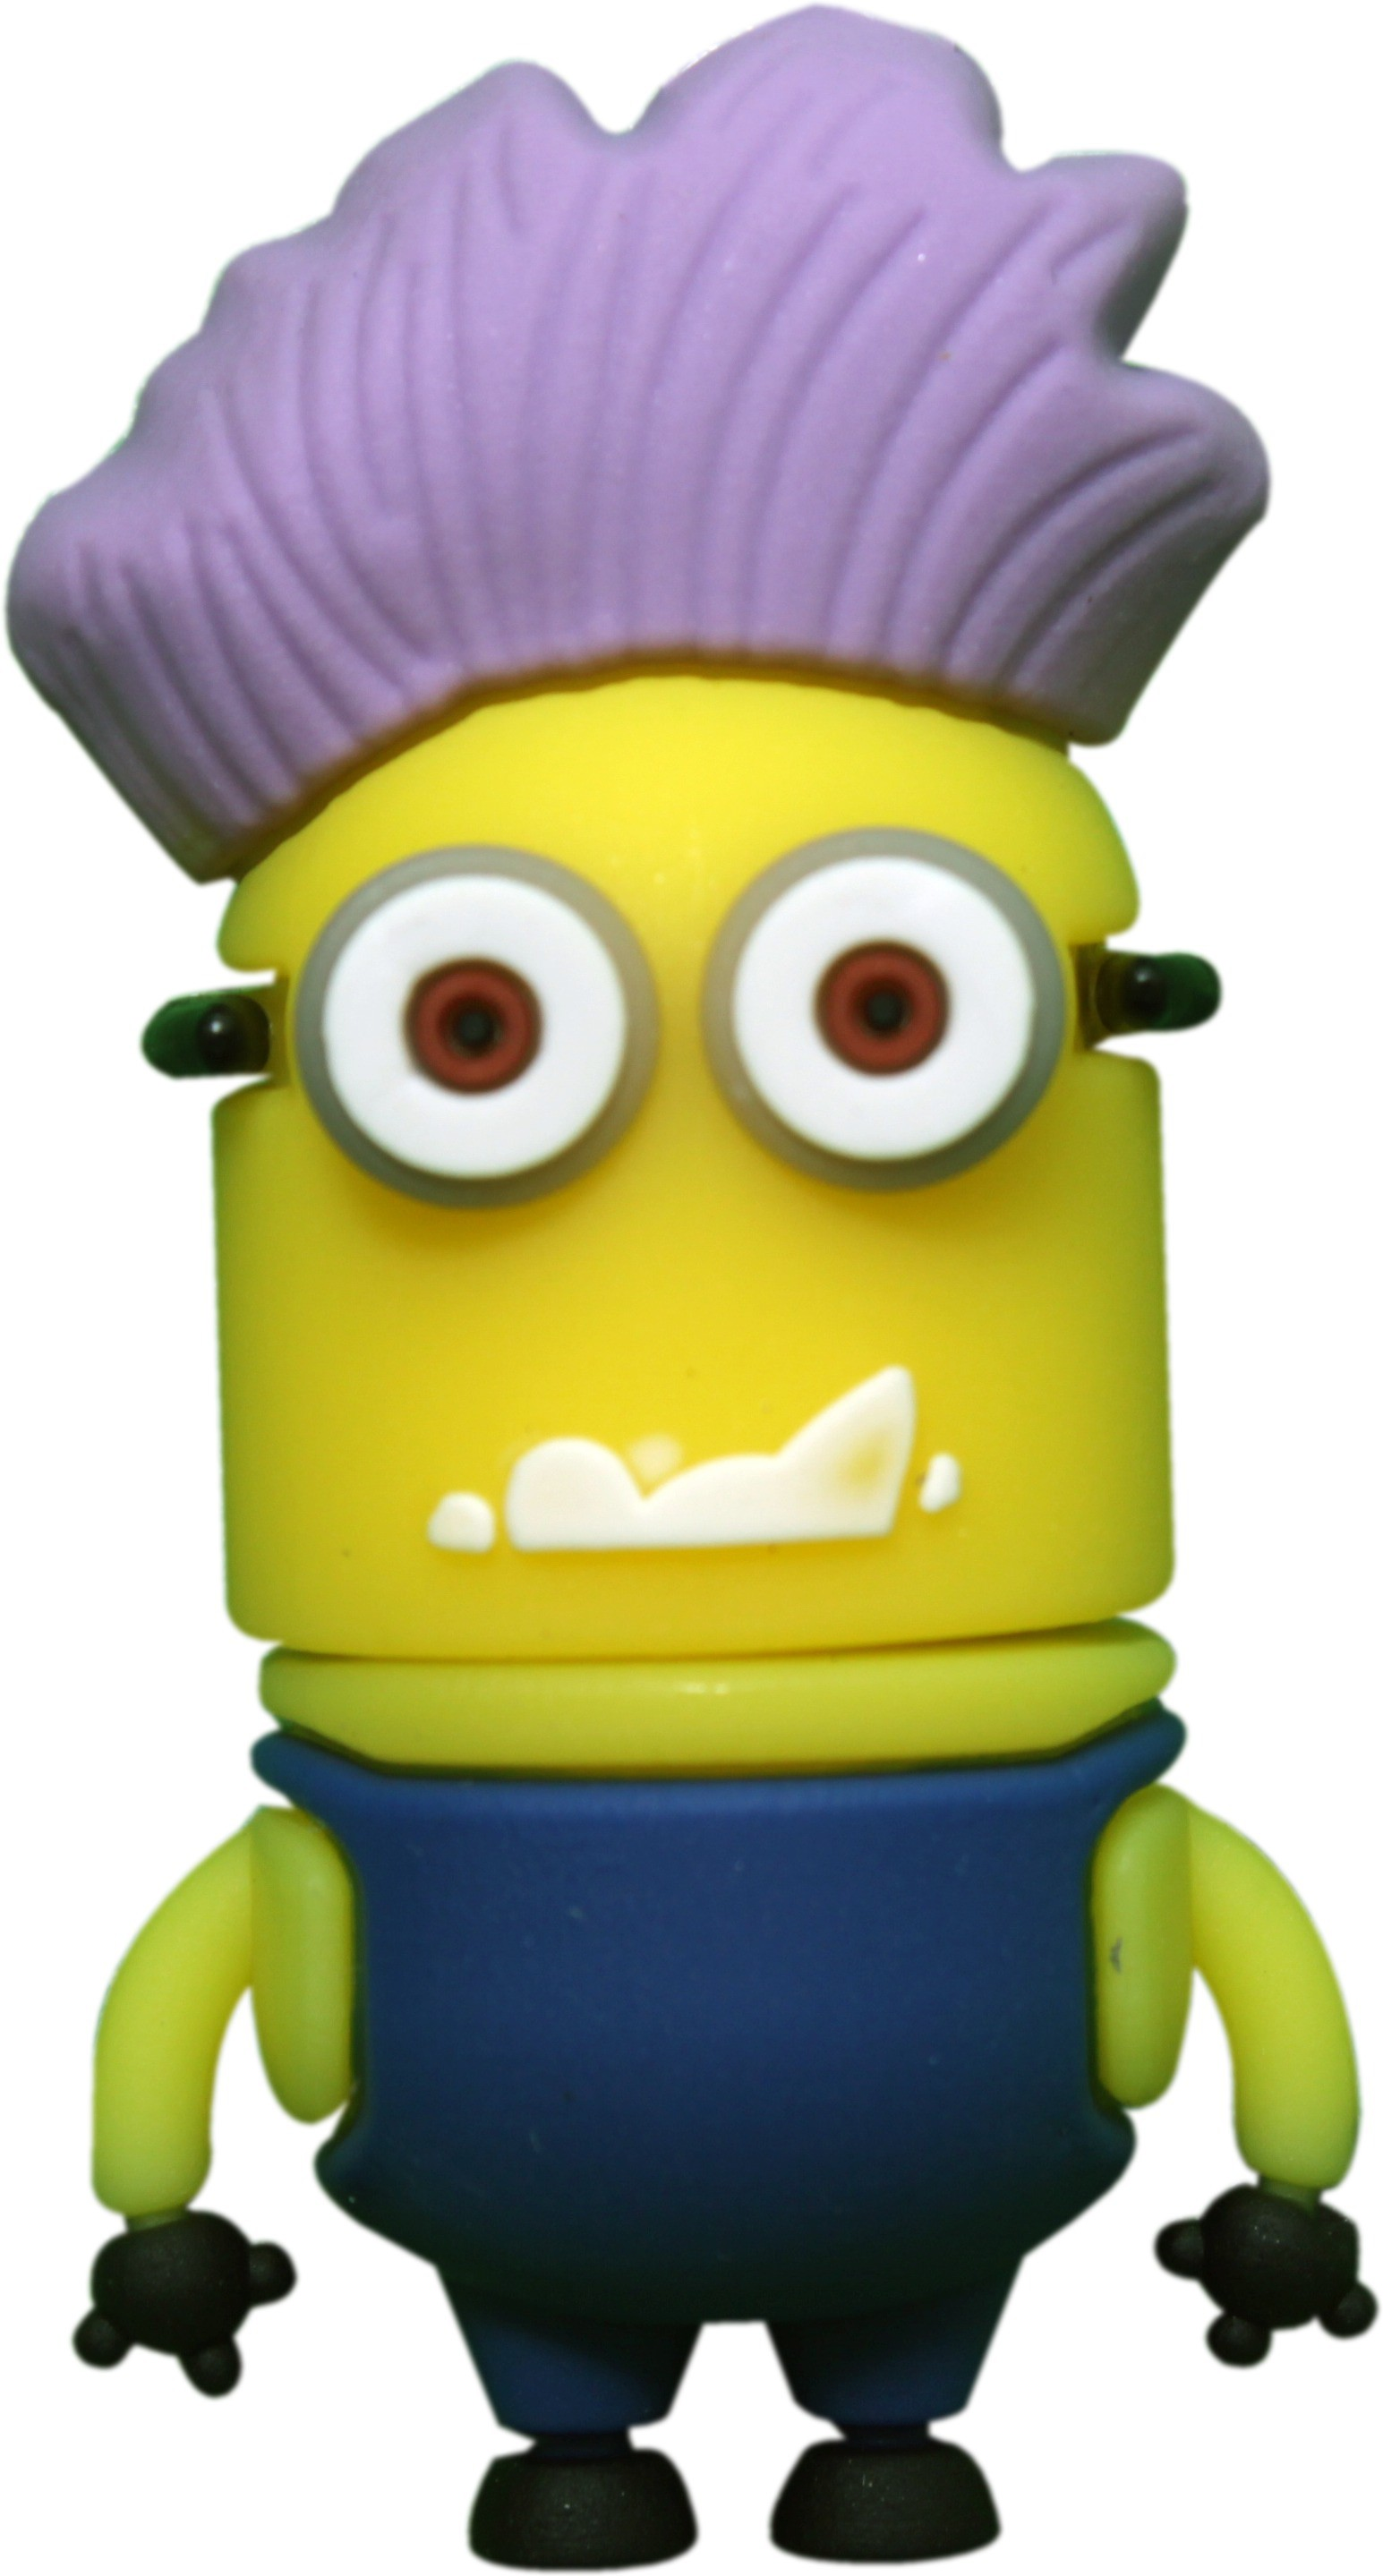 View The Fappy Store Minion Purple Head Hot Plug And Play 4 GB Pen Drive(Multicolor) Price Online(The Fappy Store)